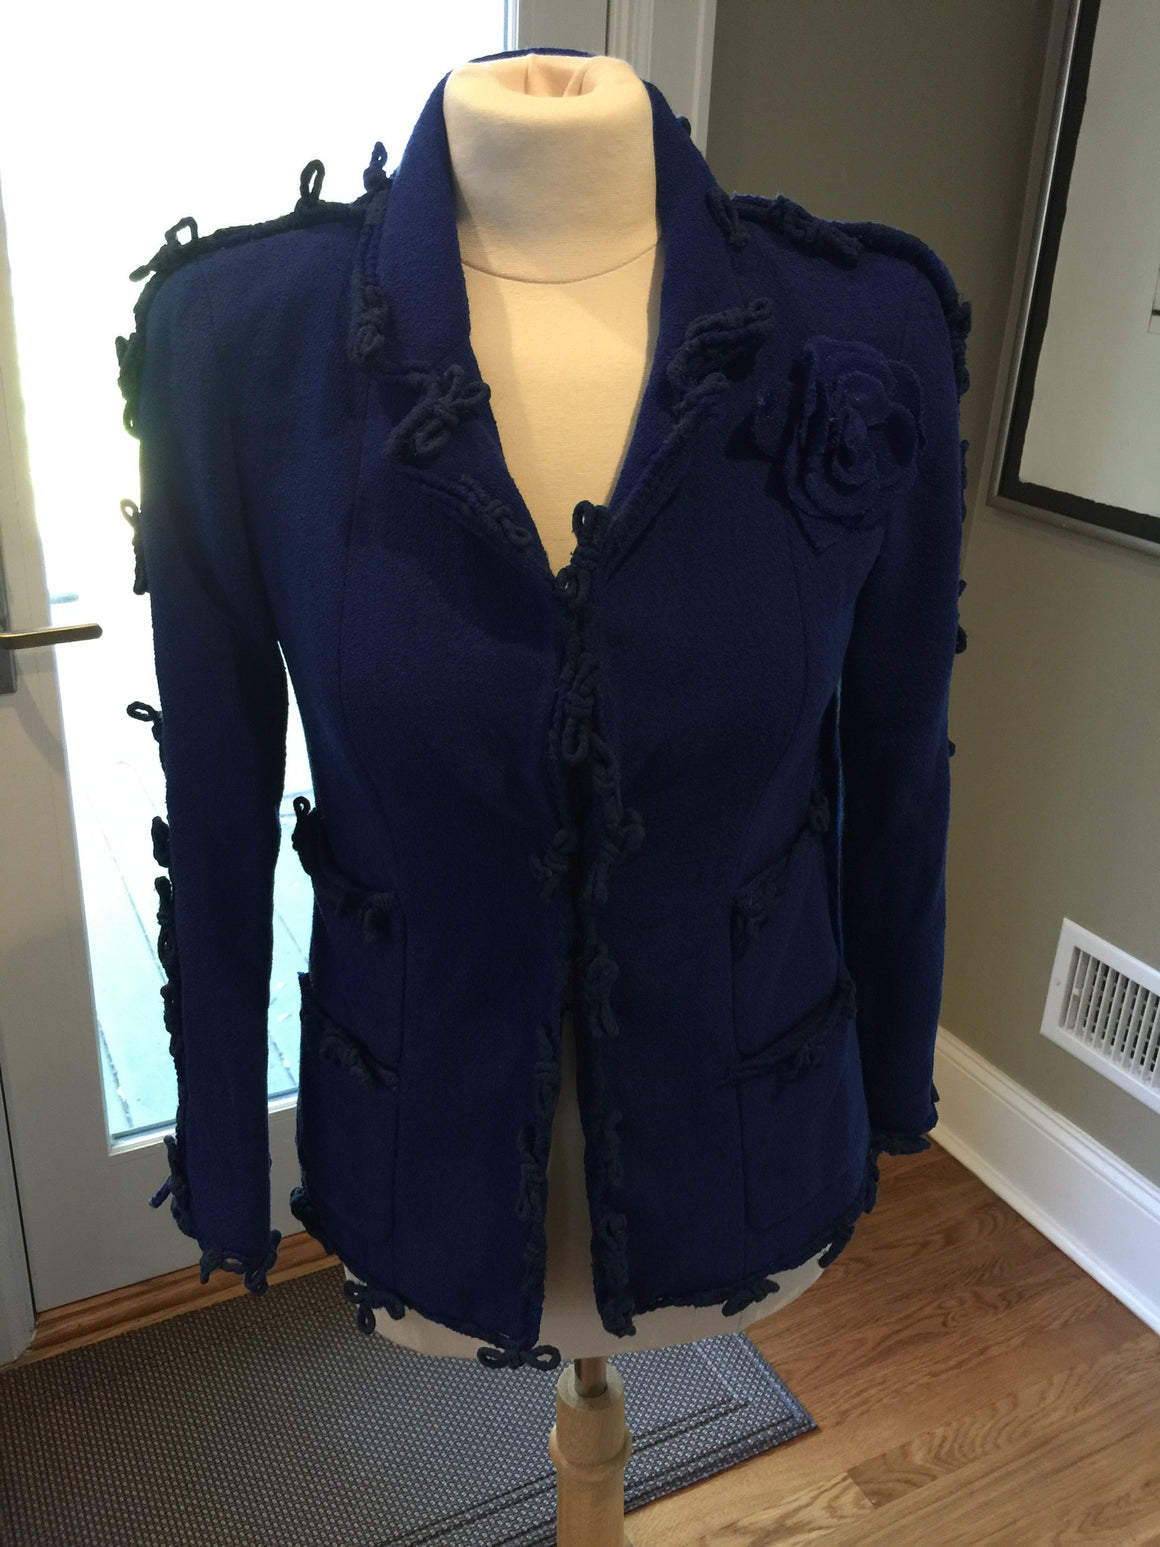 Chanel Blue Blazer - New York Authentic Designer - Chanel